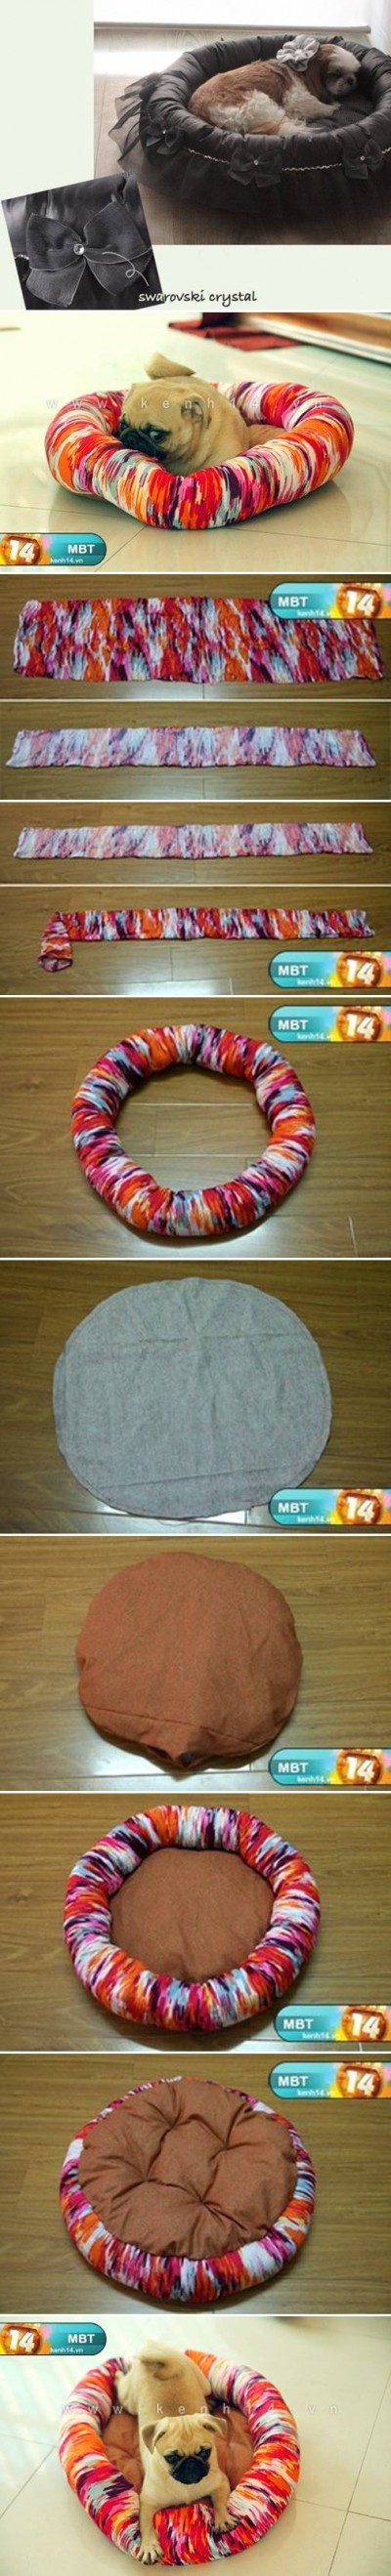 How to make Sew Pet Bed step by step DIY tutorial instructions